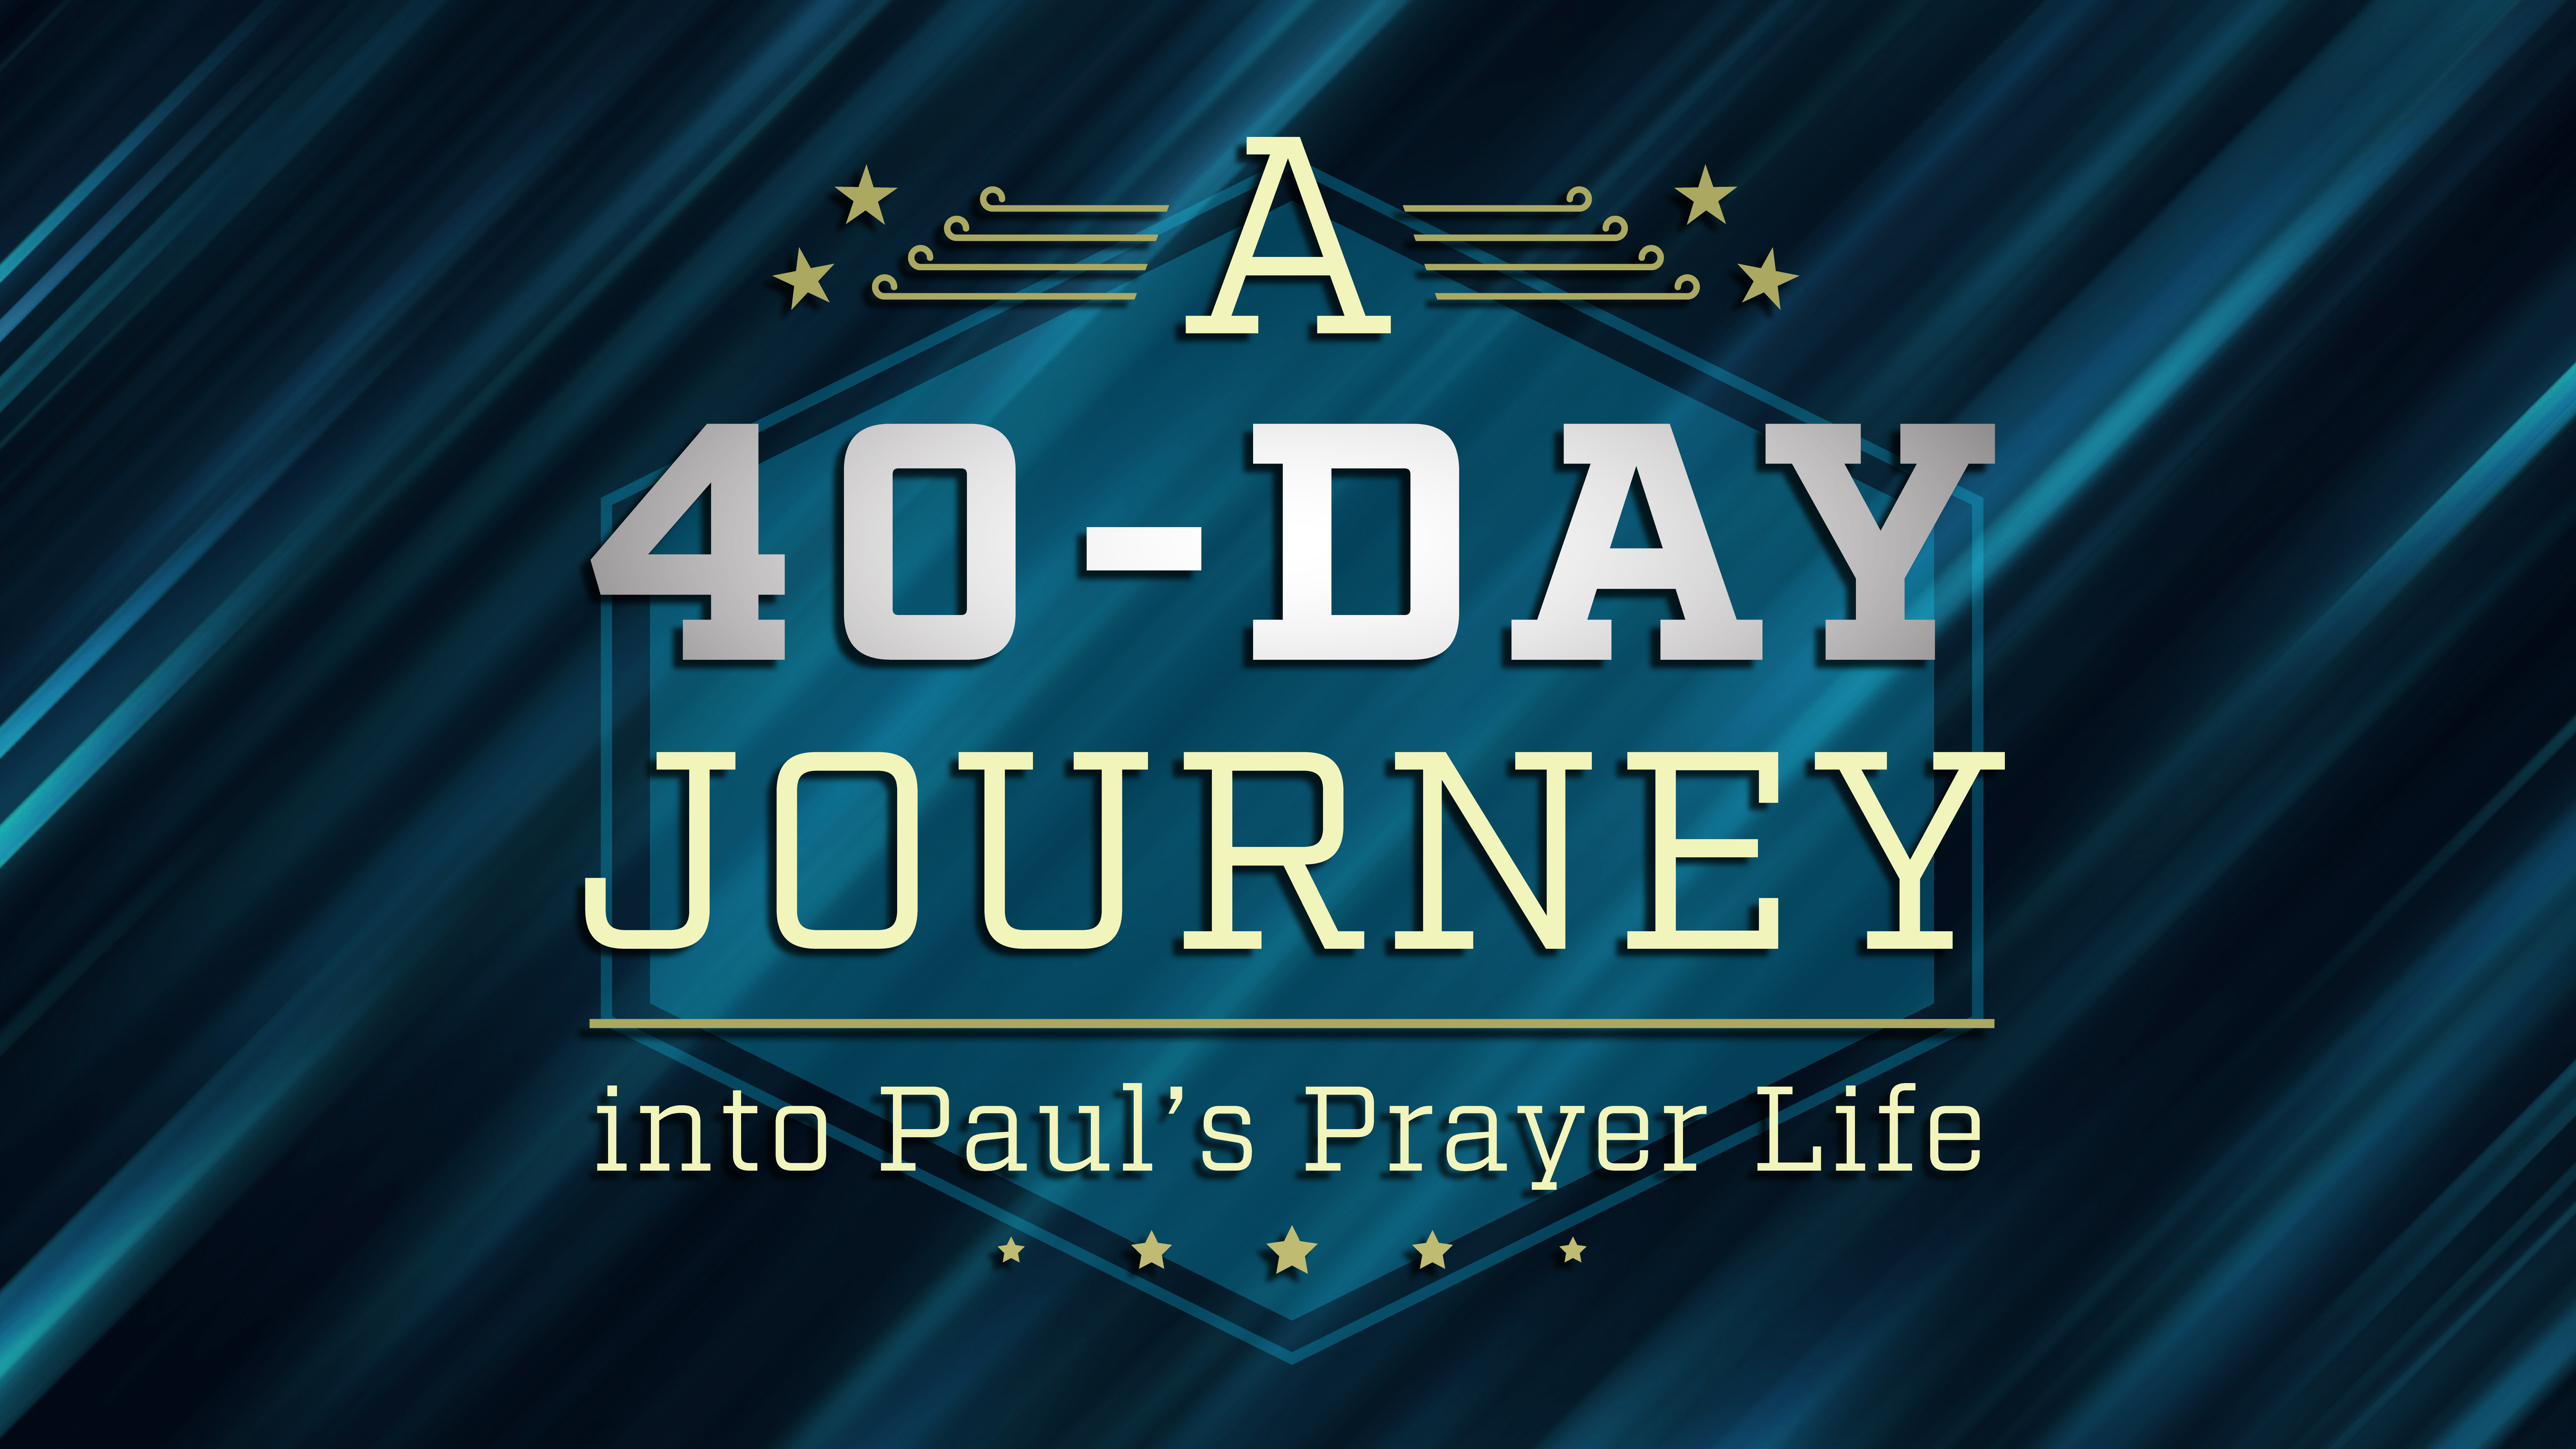 40-Day Journey Into Paul's Prayer Life